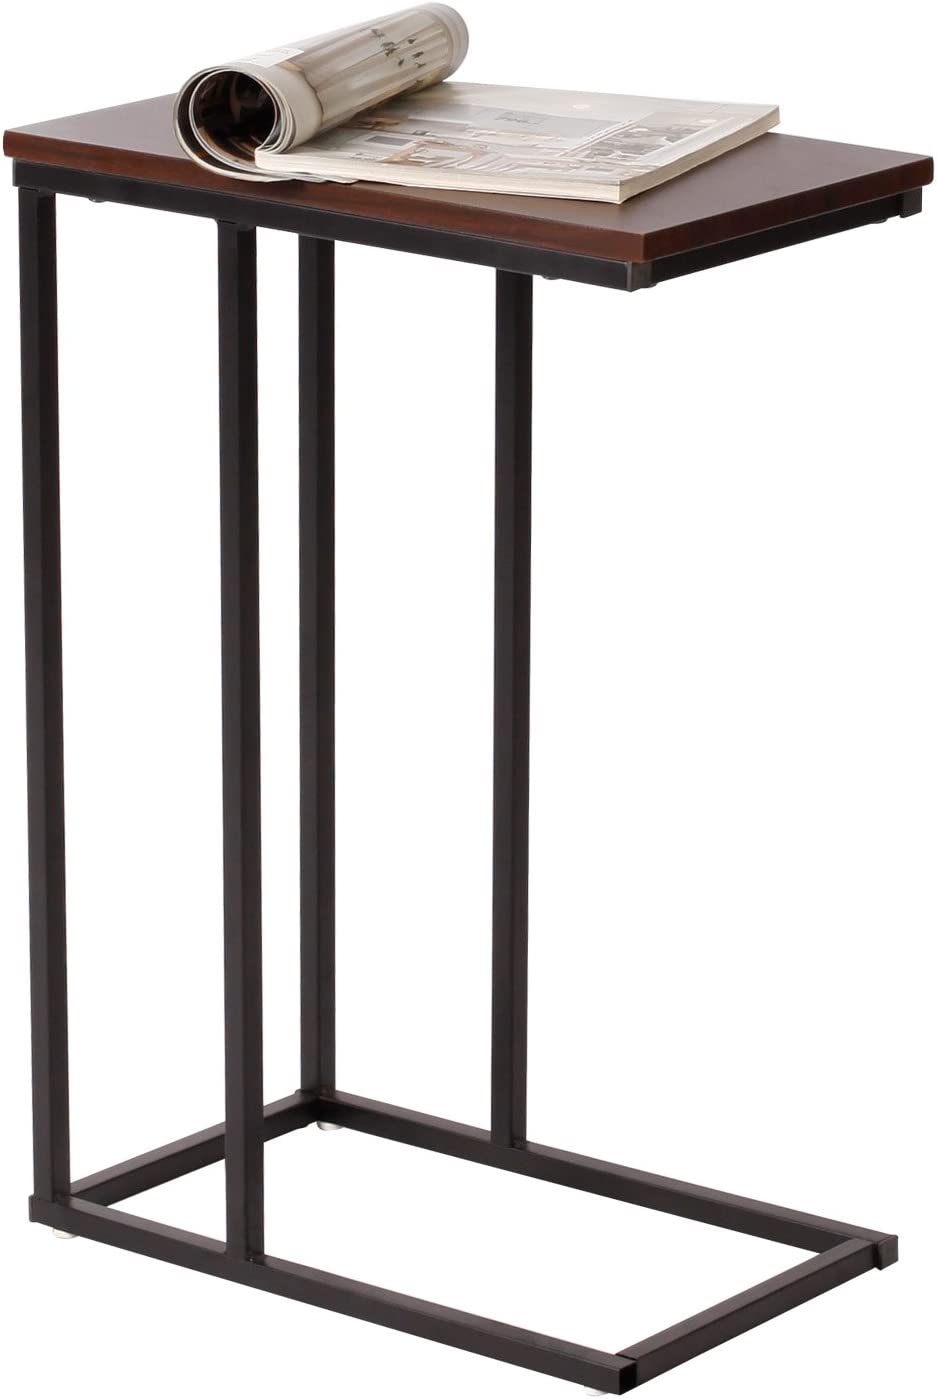 eSituro End Table Sofa Side Table Dark Beech Living Room Coffee Table Laptop Table Bedside Table Nightstand with Metal Frame